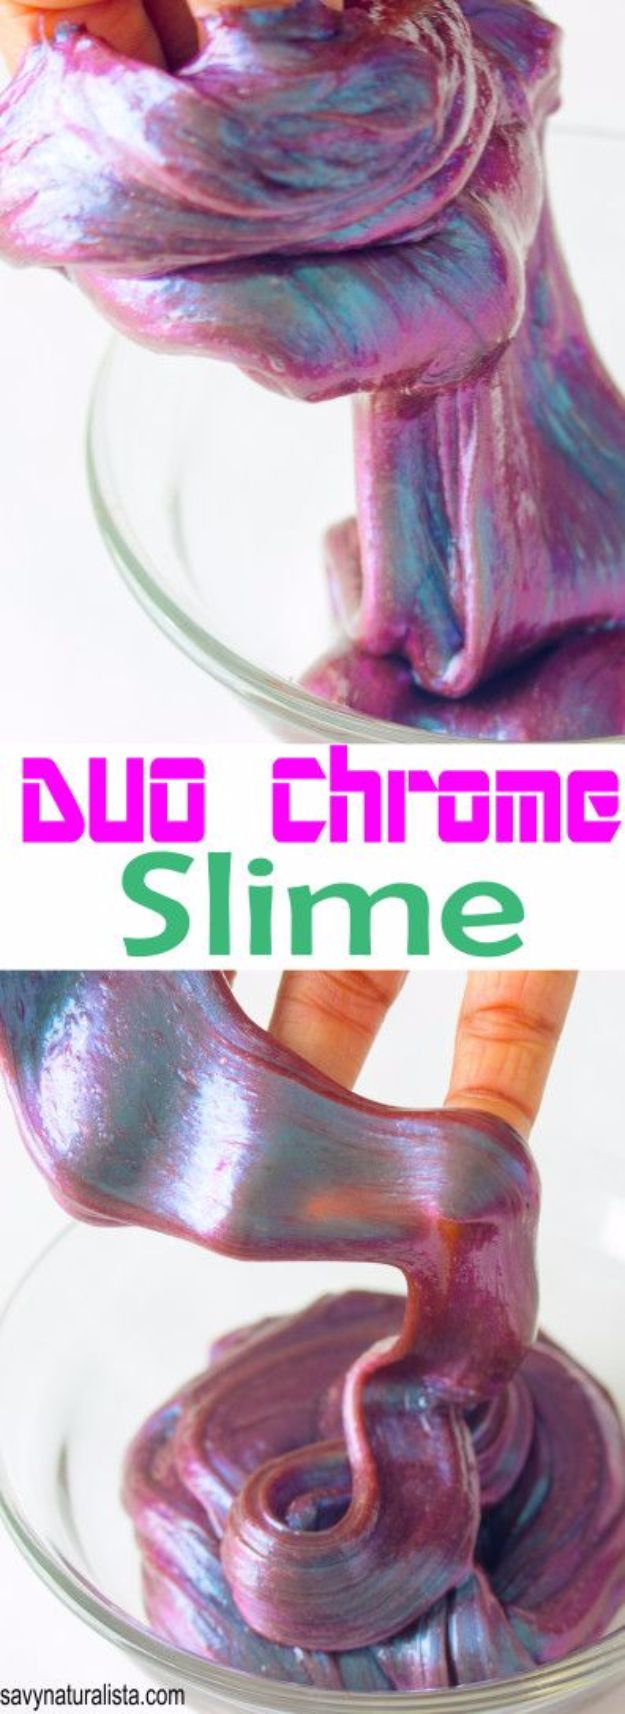 Best DIY Slime Recipes - Duo Chrome Slime - Cool and Easy Slime Recipe and Tutorials - Ideas Without Glue, Without Borax, For Kids, With Liquid Starch, Cornstarch and Laundry Detergent - How to Make Slime at Home - Fun Crafts and DIY Projects for Teens, Kids, Teenagers and Teens - Galaxy and Glitter Slime, Edible Slime, Rainbow Colored Slime, Shaving Cream recipes and more fun crafts and slimes http://diyprojectsforteens.com/diy-slime-recipe-ideas